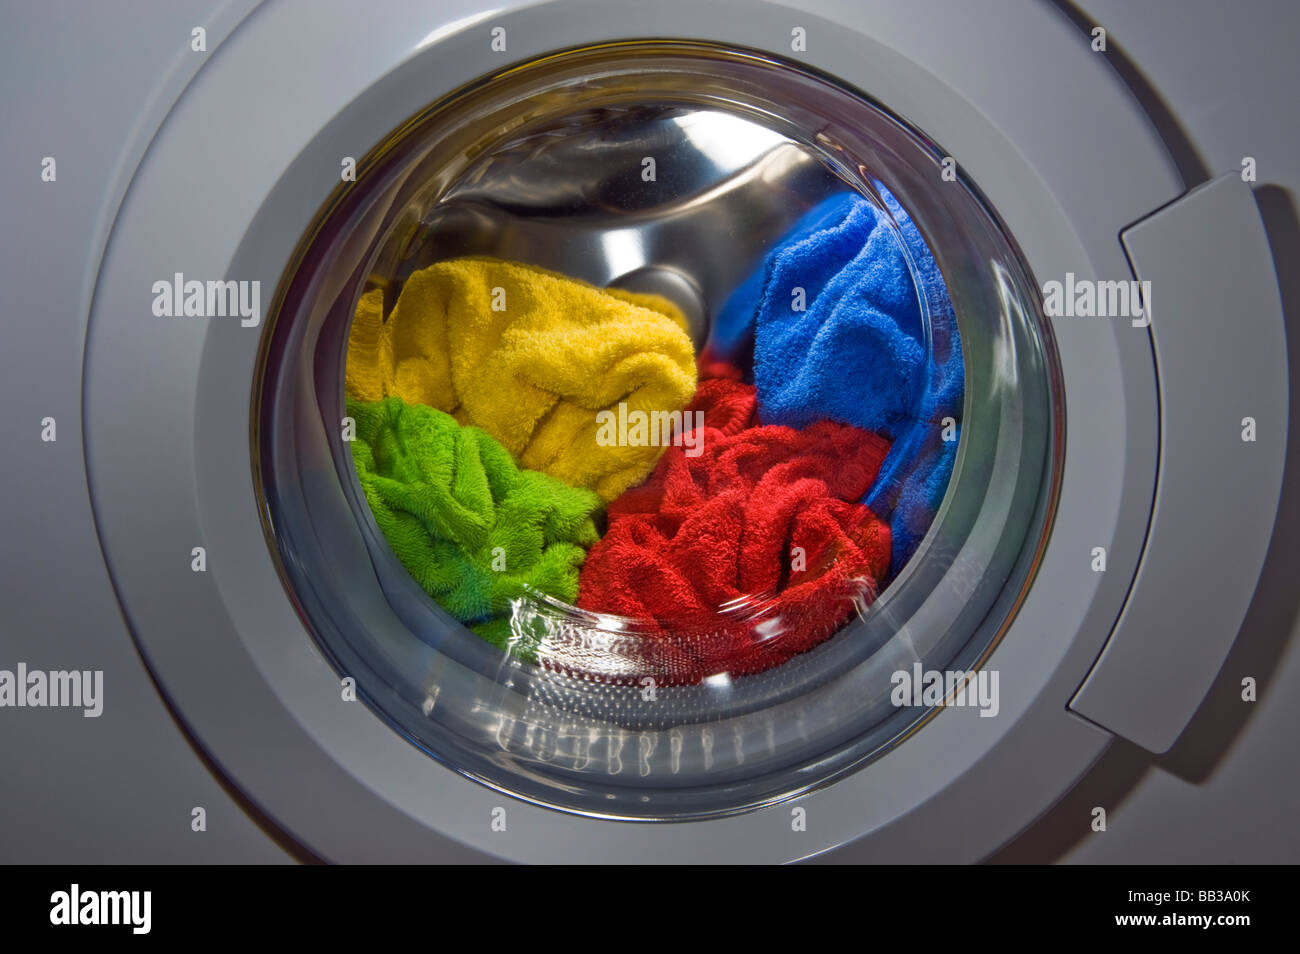 Laundry Washing Machine Wash Cycle Clean Cleaner Wear